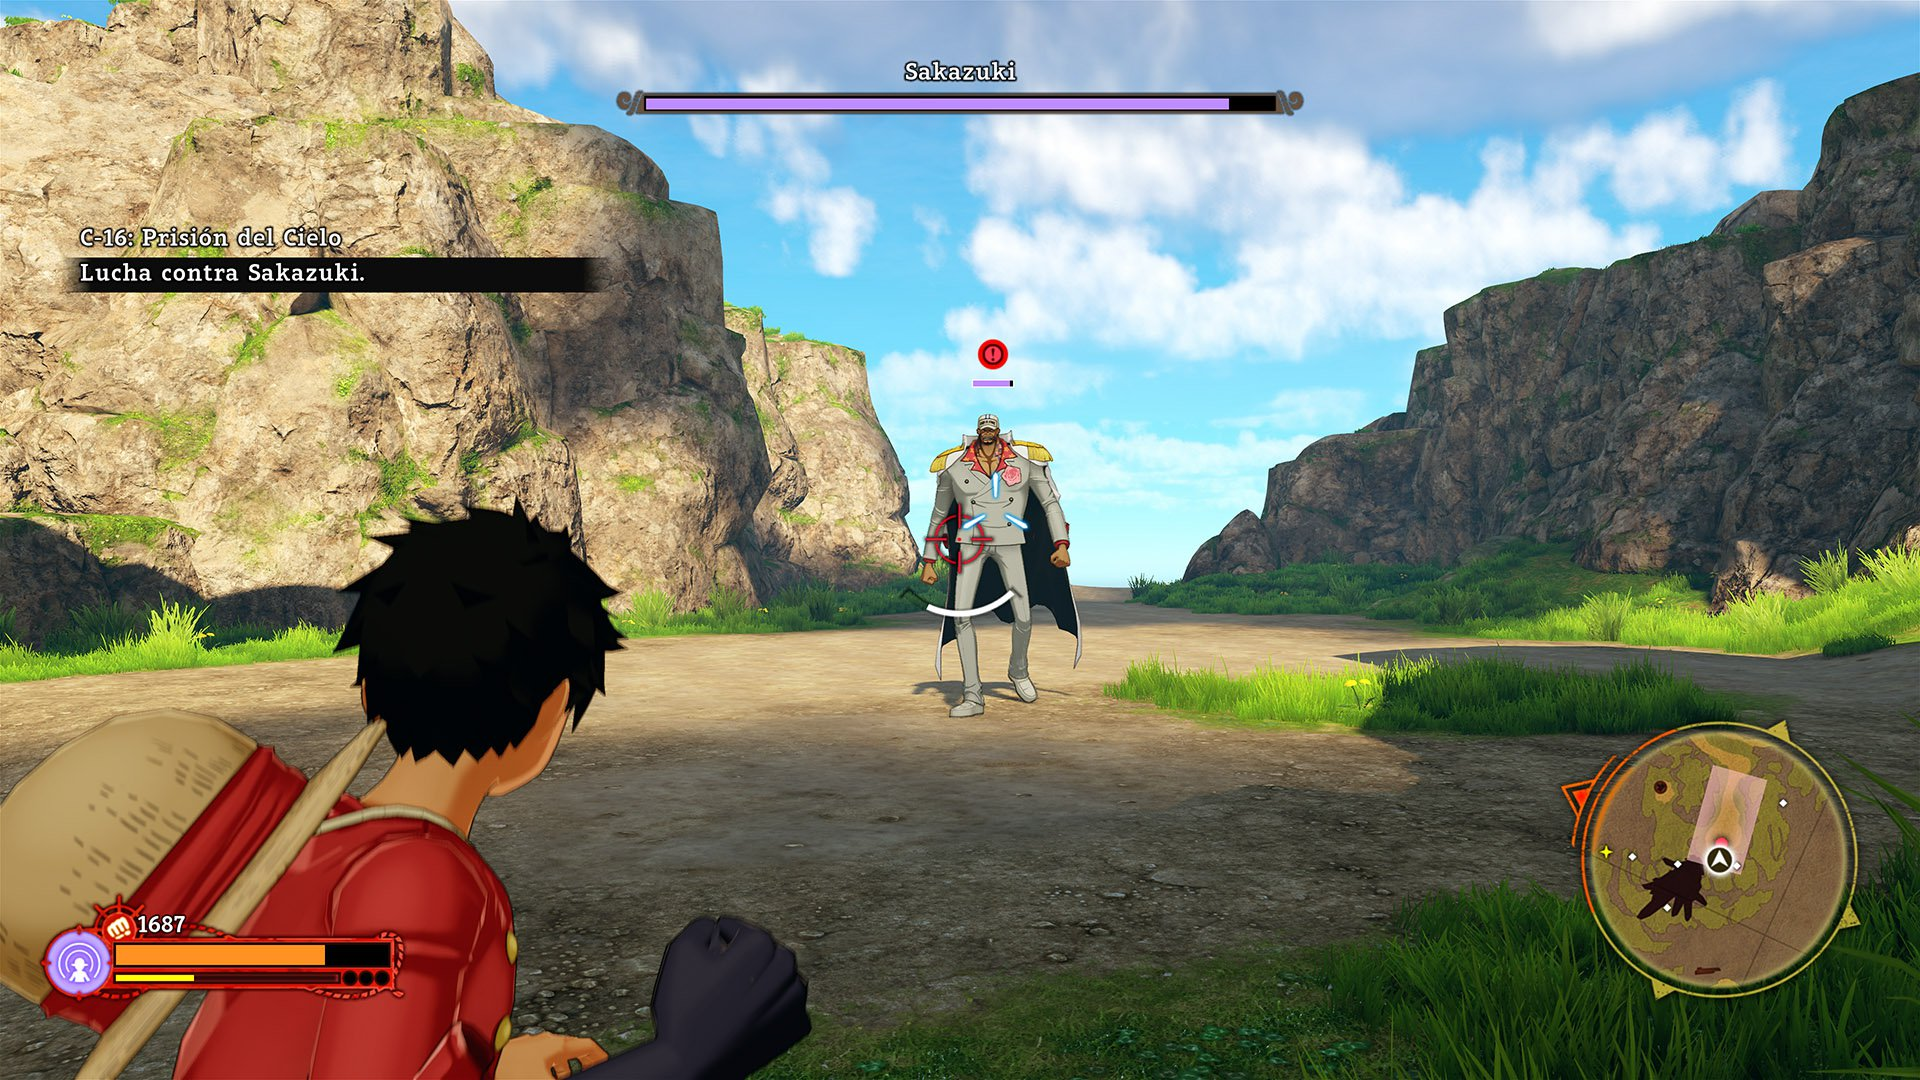 Análisis de One Piece: World Seeker 5